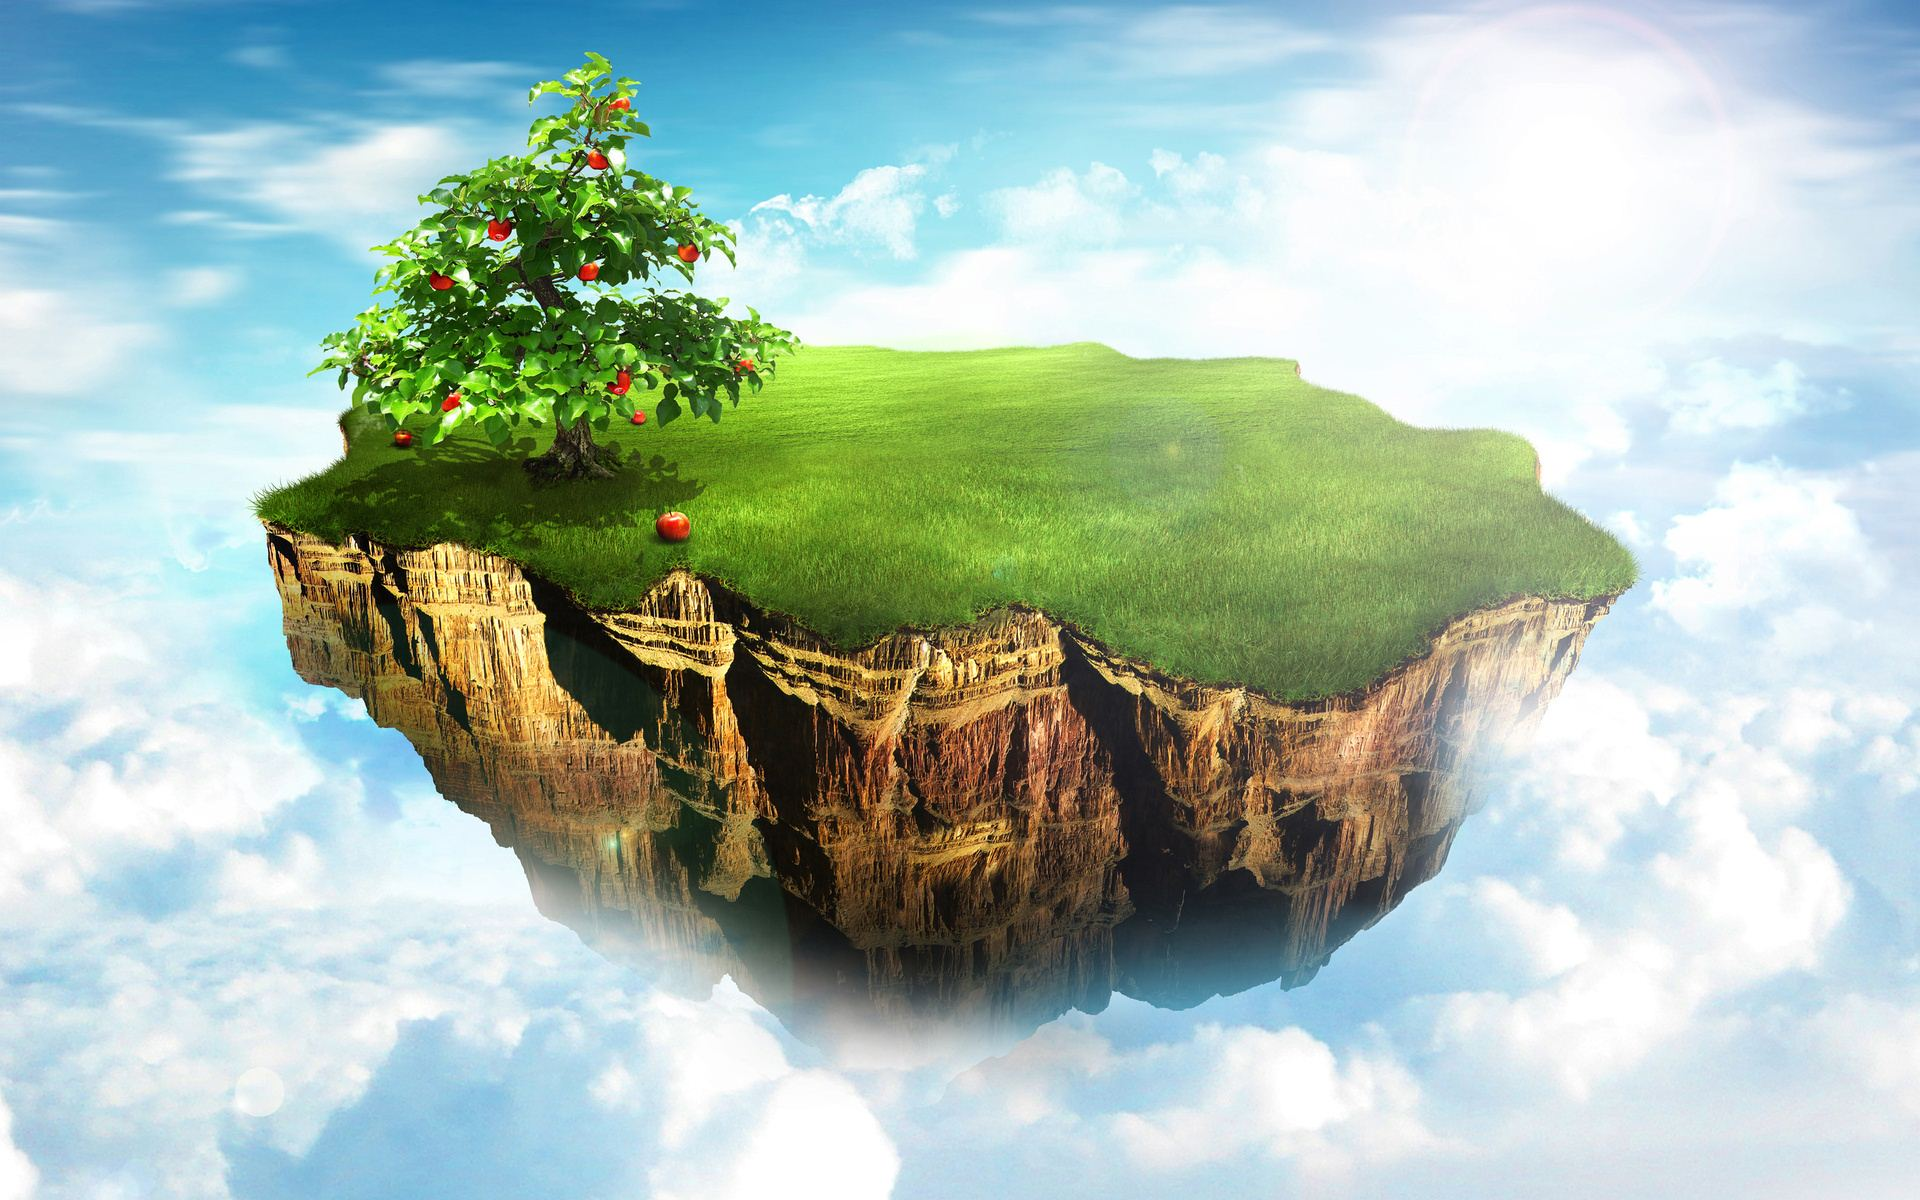 3D images of nature - HD Wallpapers Backgrounds of Your Choice